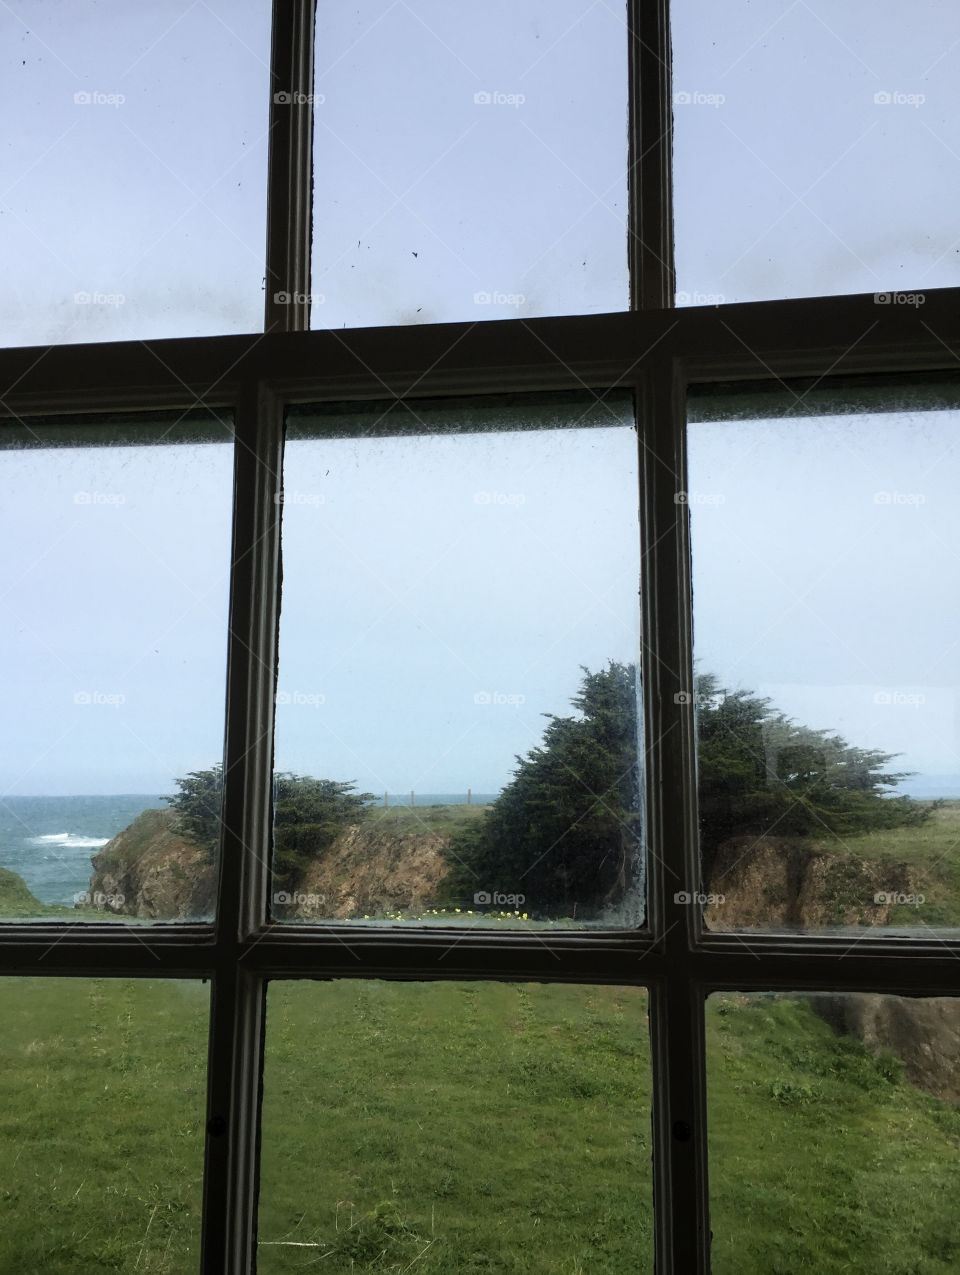 Outside the window, landscape of a coastal view.